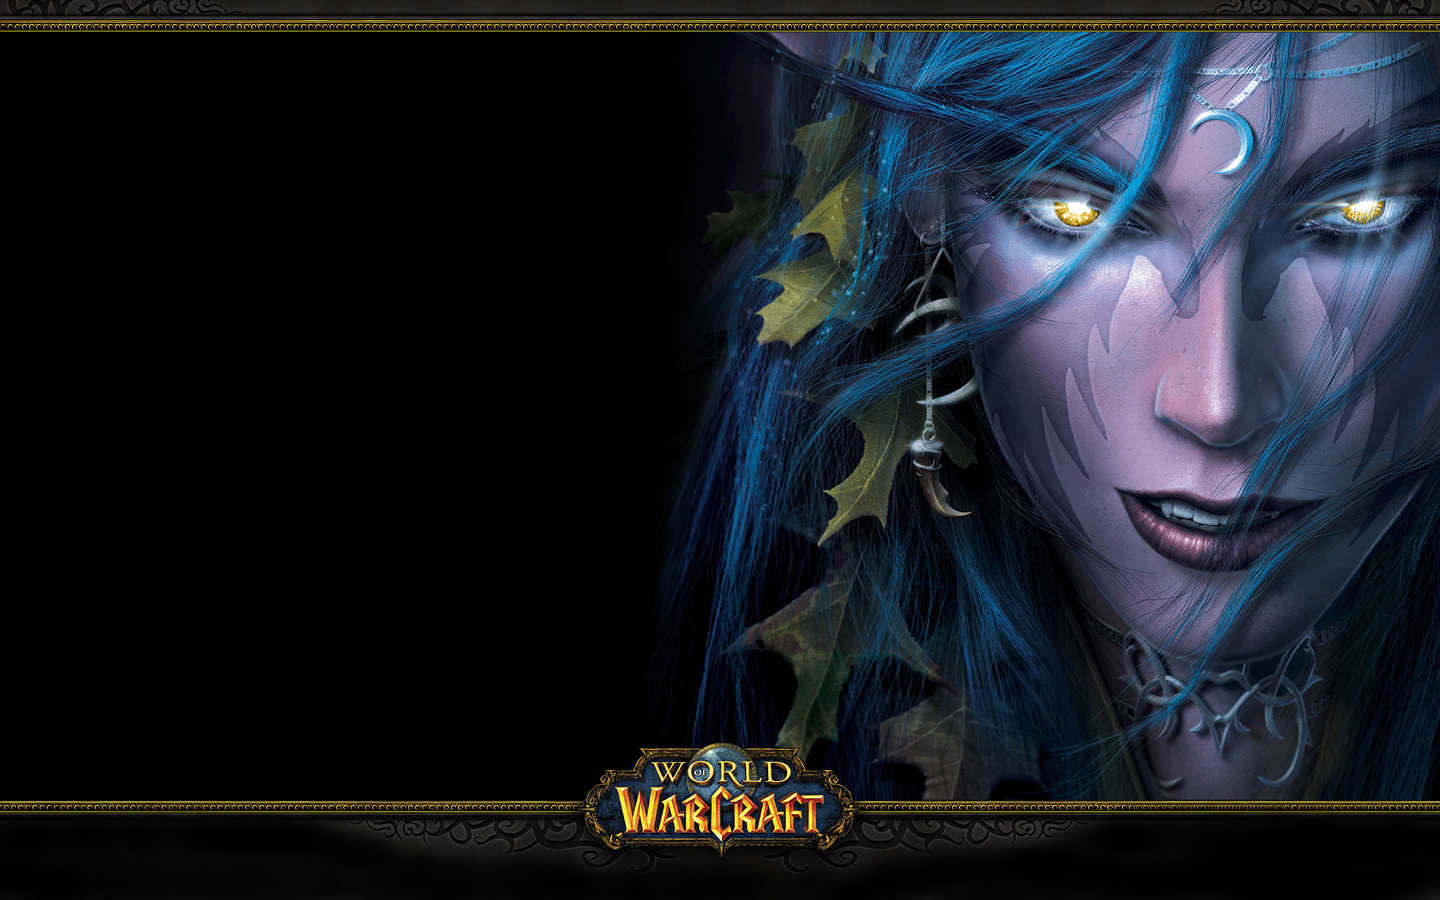 world of warcraft goes to play until level 20 trial accounts are 1440x900